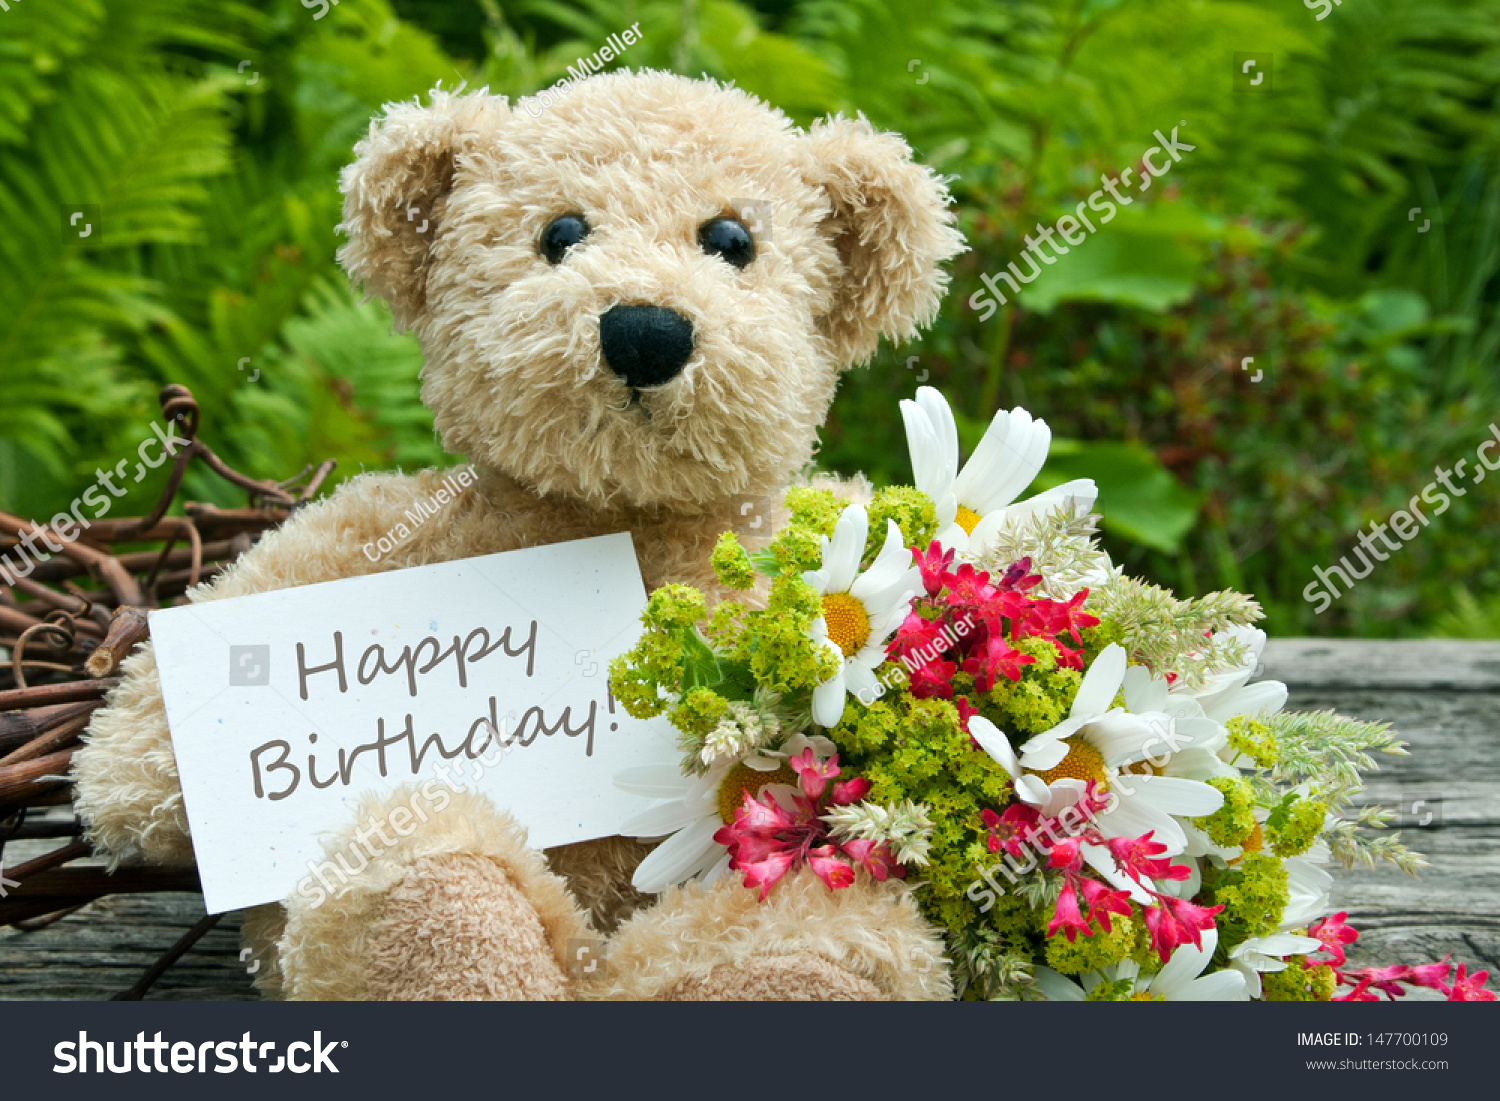 Royalty Free Teddy Bear With Flowers And Birthday 147700109 Stock